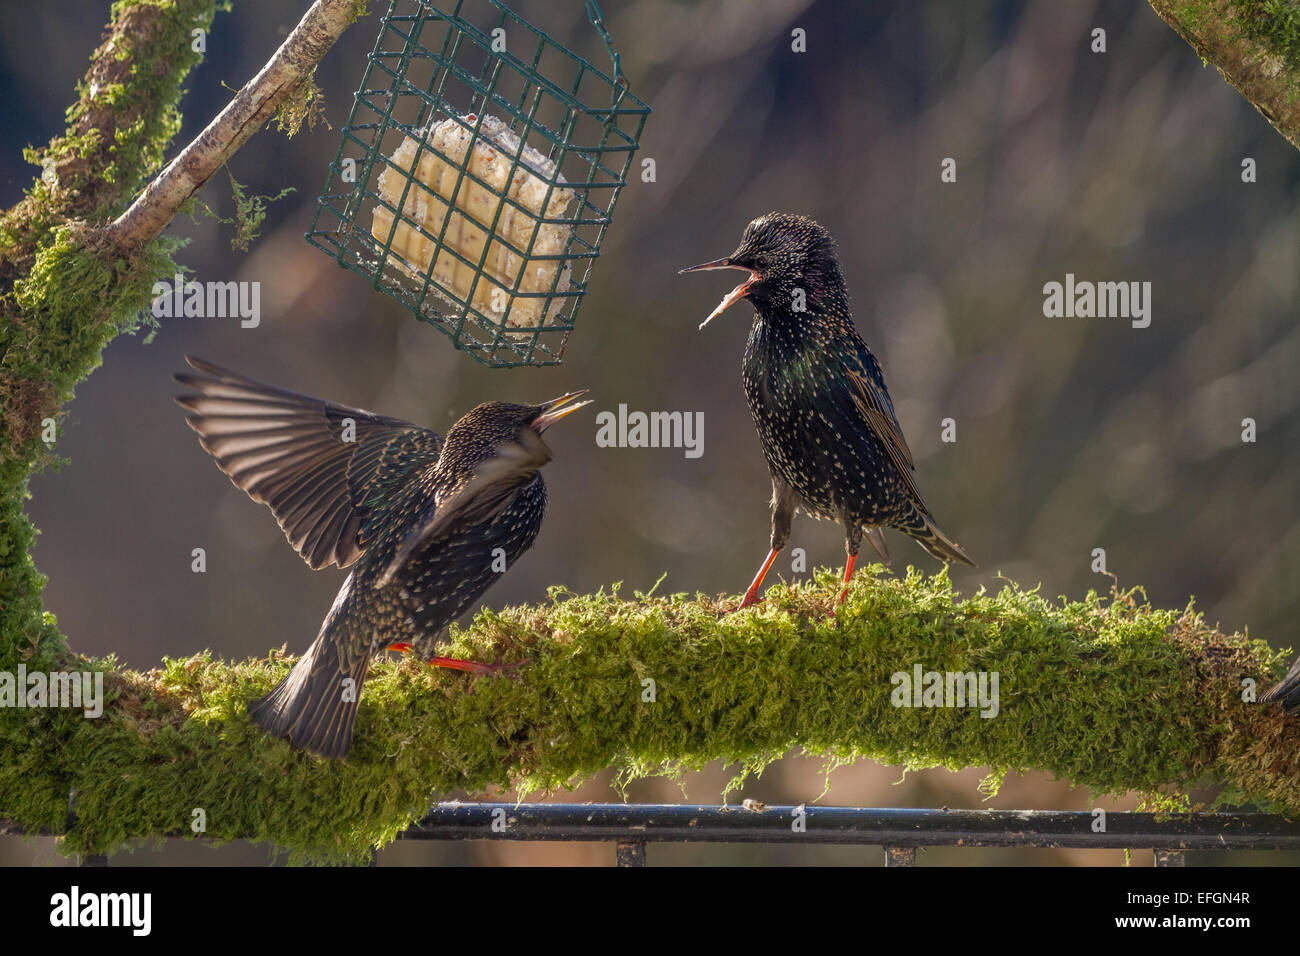 Two starlings on squabbling over food whilst stood on a mossy perch. They have their wings out and beaks open. Stock Photo